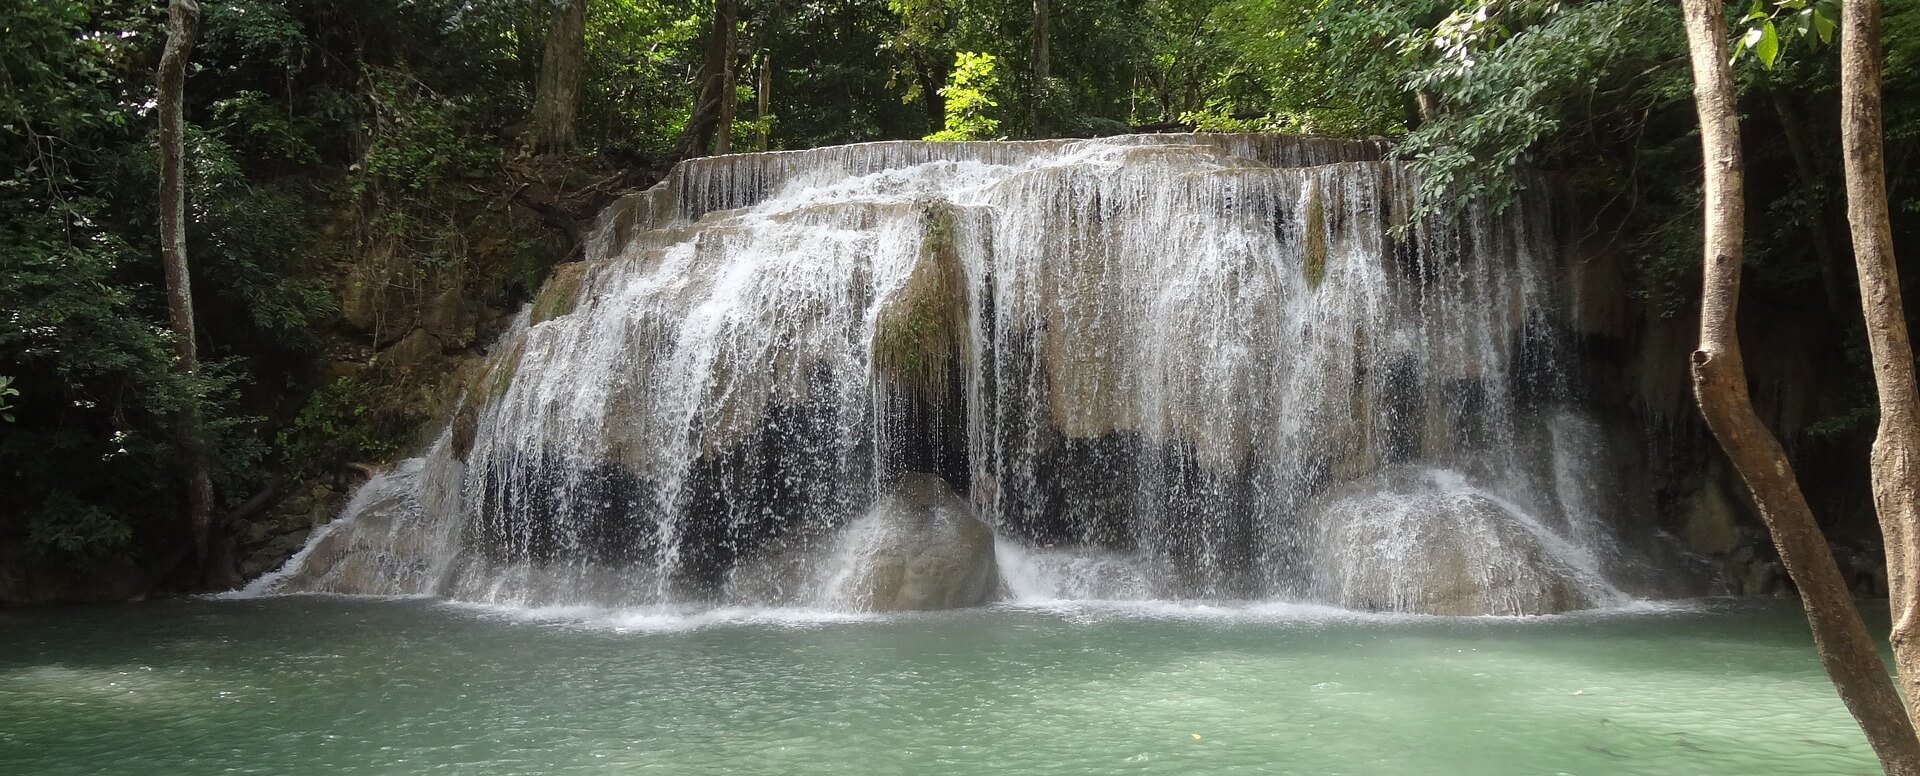 10. Visit the national parks - Thailand